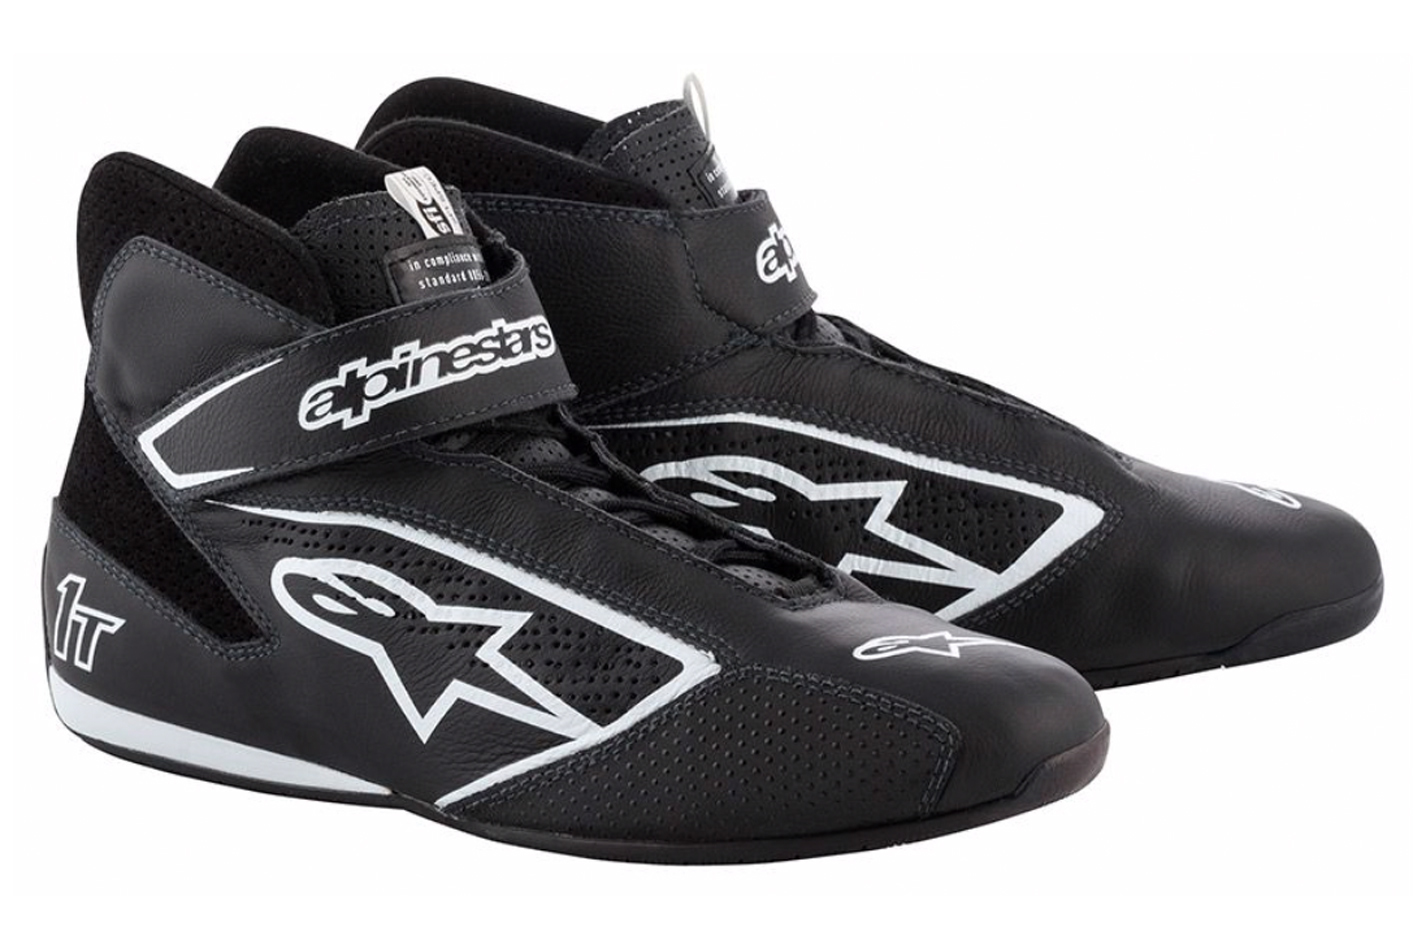 Alpinestars USA 2710119-12B-9 Shoe, Tech 1-T, Driving, Mid-Top, SFI 3.3, FIA Approved, Leather Outer, Nomex Inner, Black, Size 9, Pair